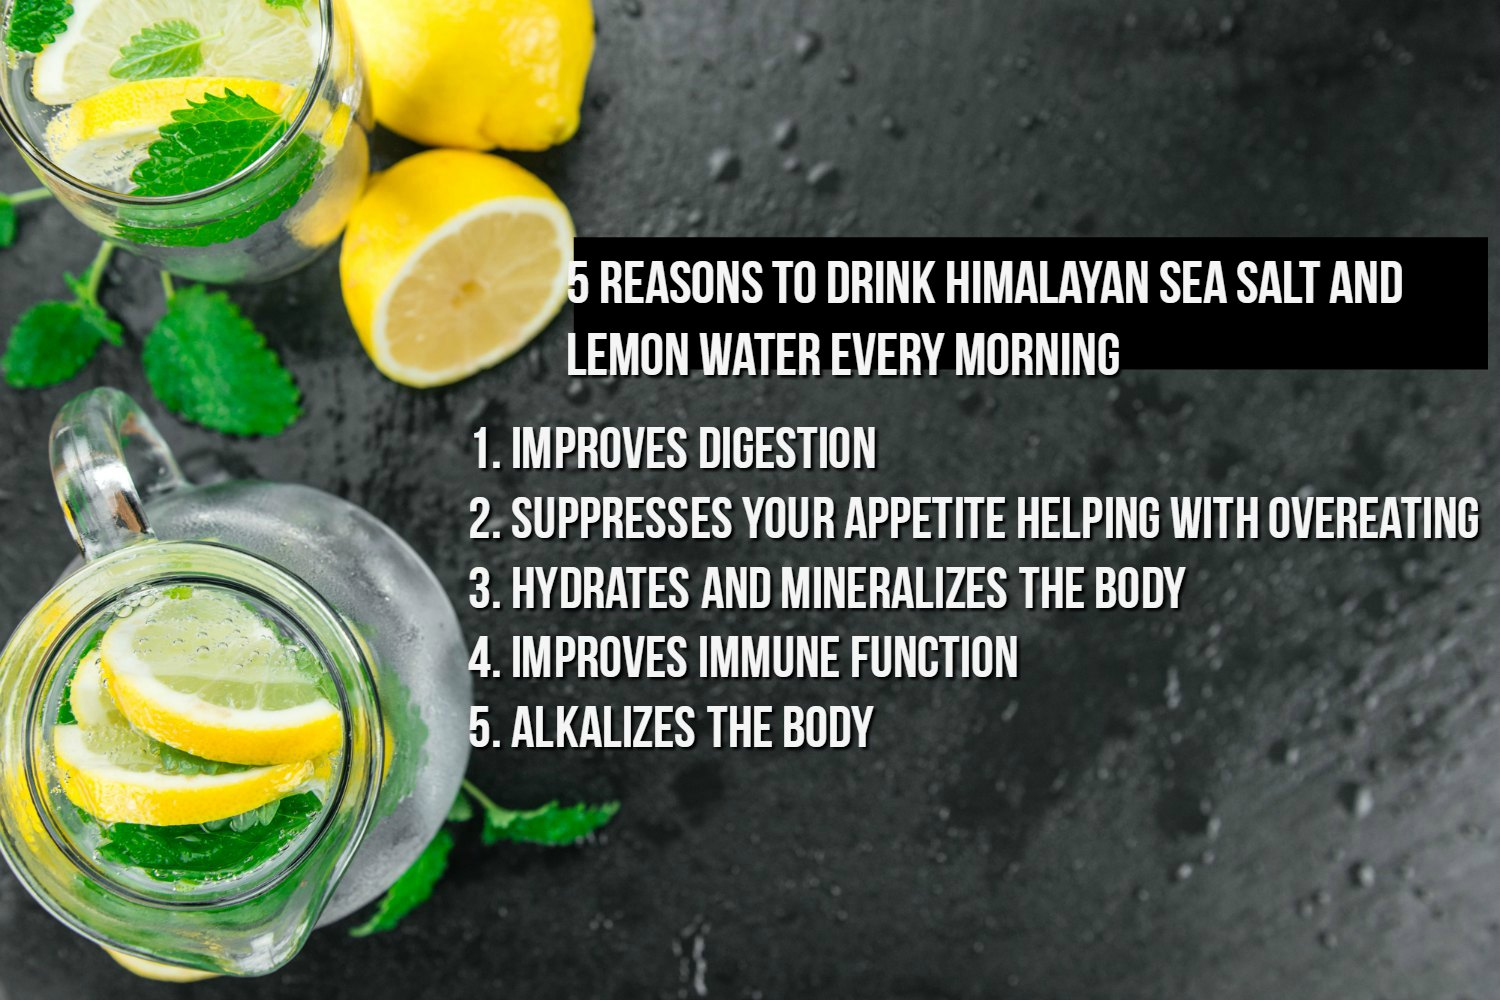 5 Reasons to Drink Himalayan Sea Salt and Water Every Morning